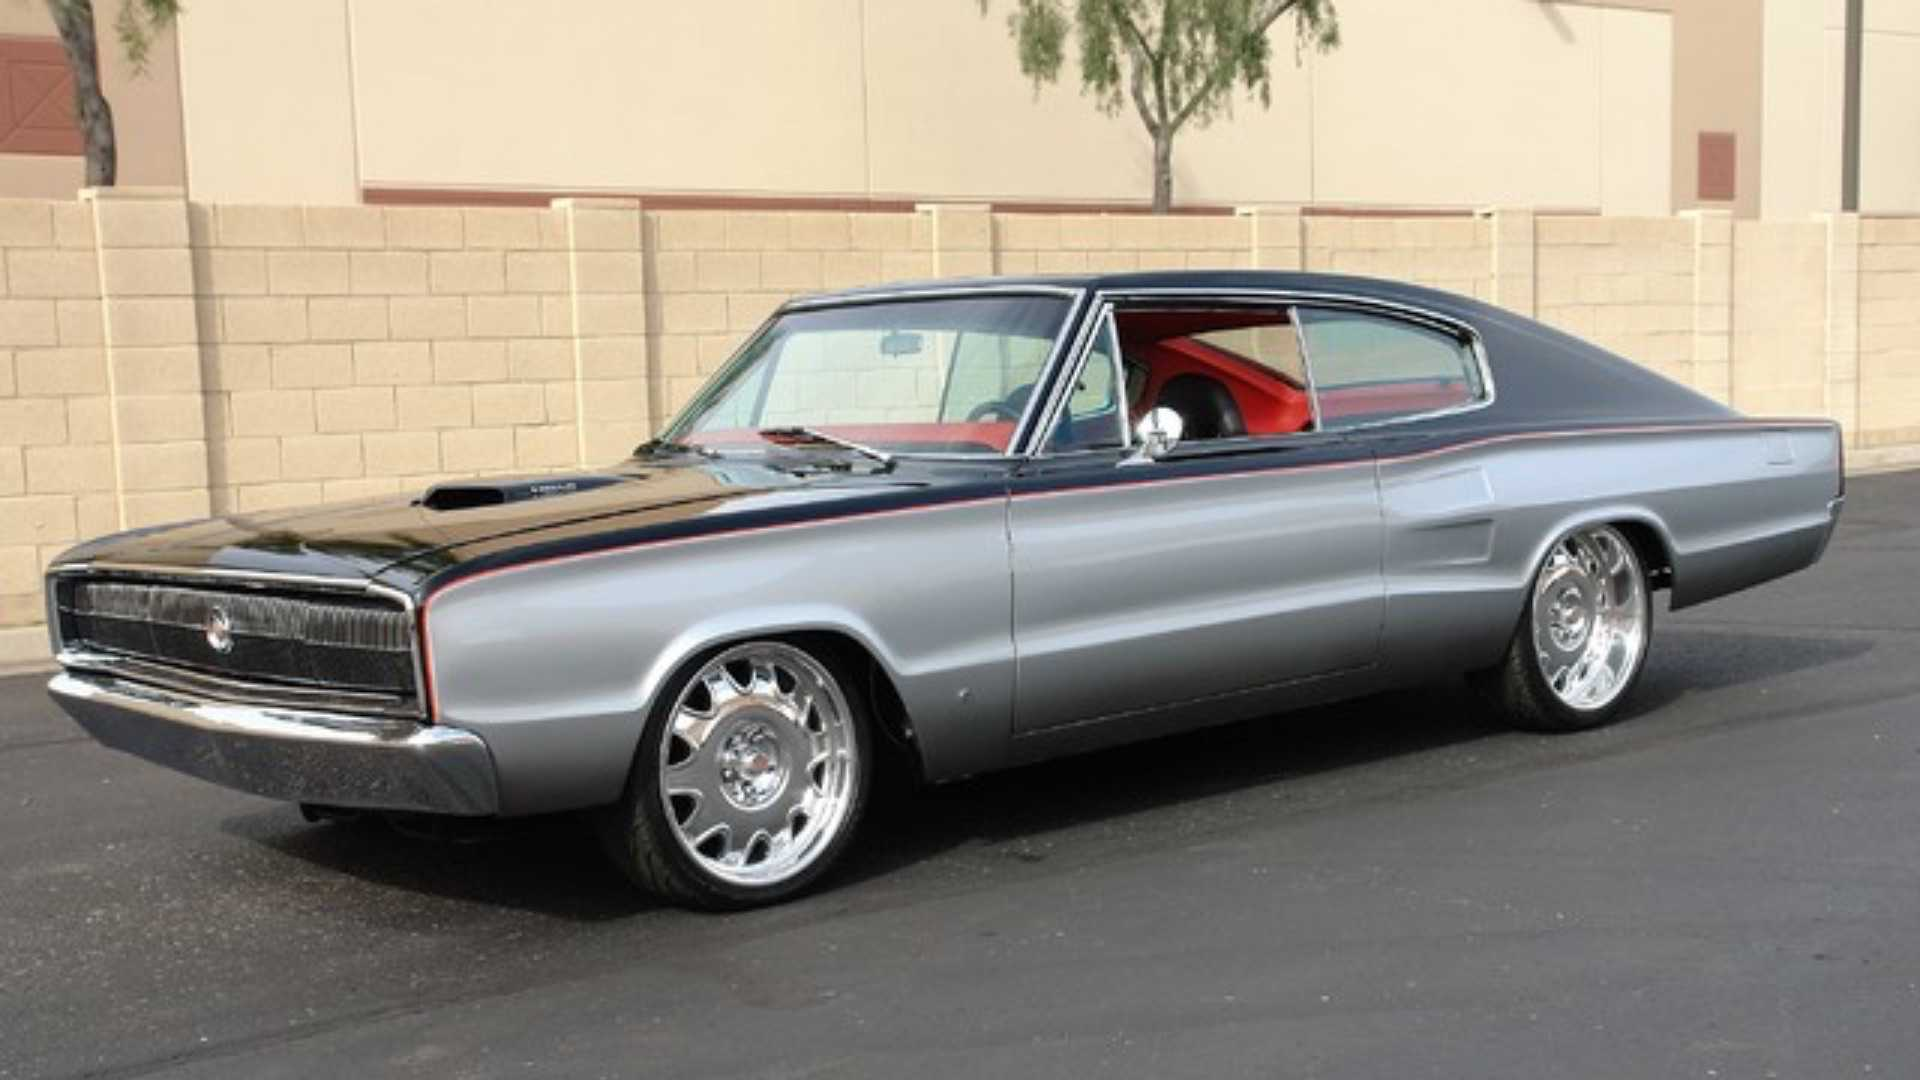 1967 Dodge Charger Was Once Featured On Foose's Overhaulin